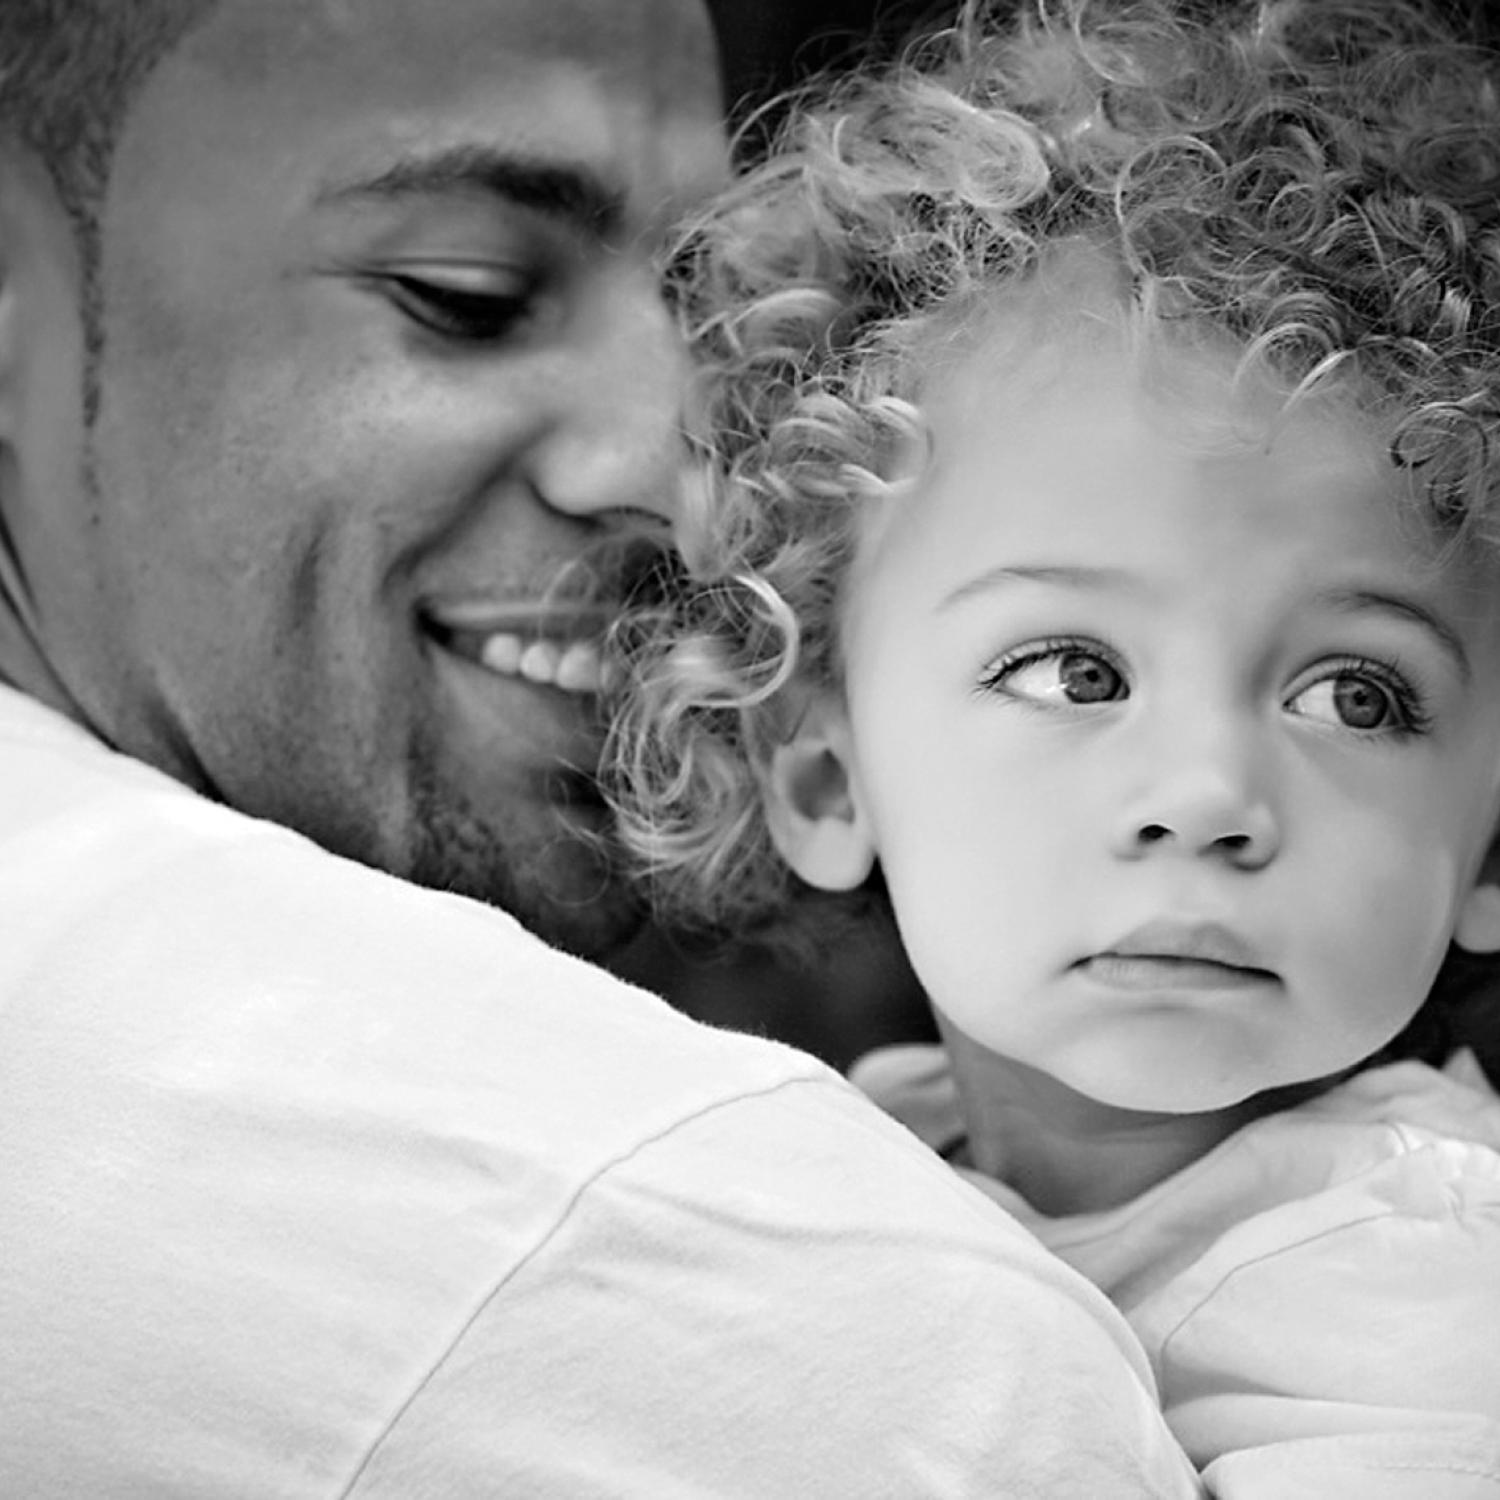 parenting tips for single dads Dating tips for single parents how to overcome the fear of repeating costly relationship mistakes posted apr 12, 2013.